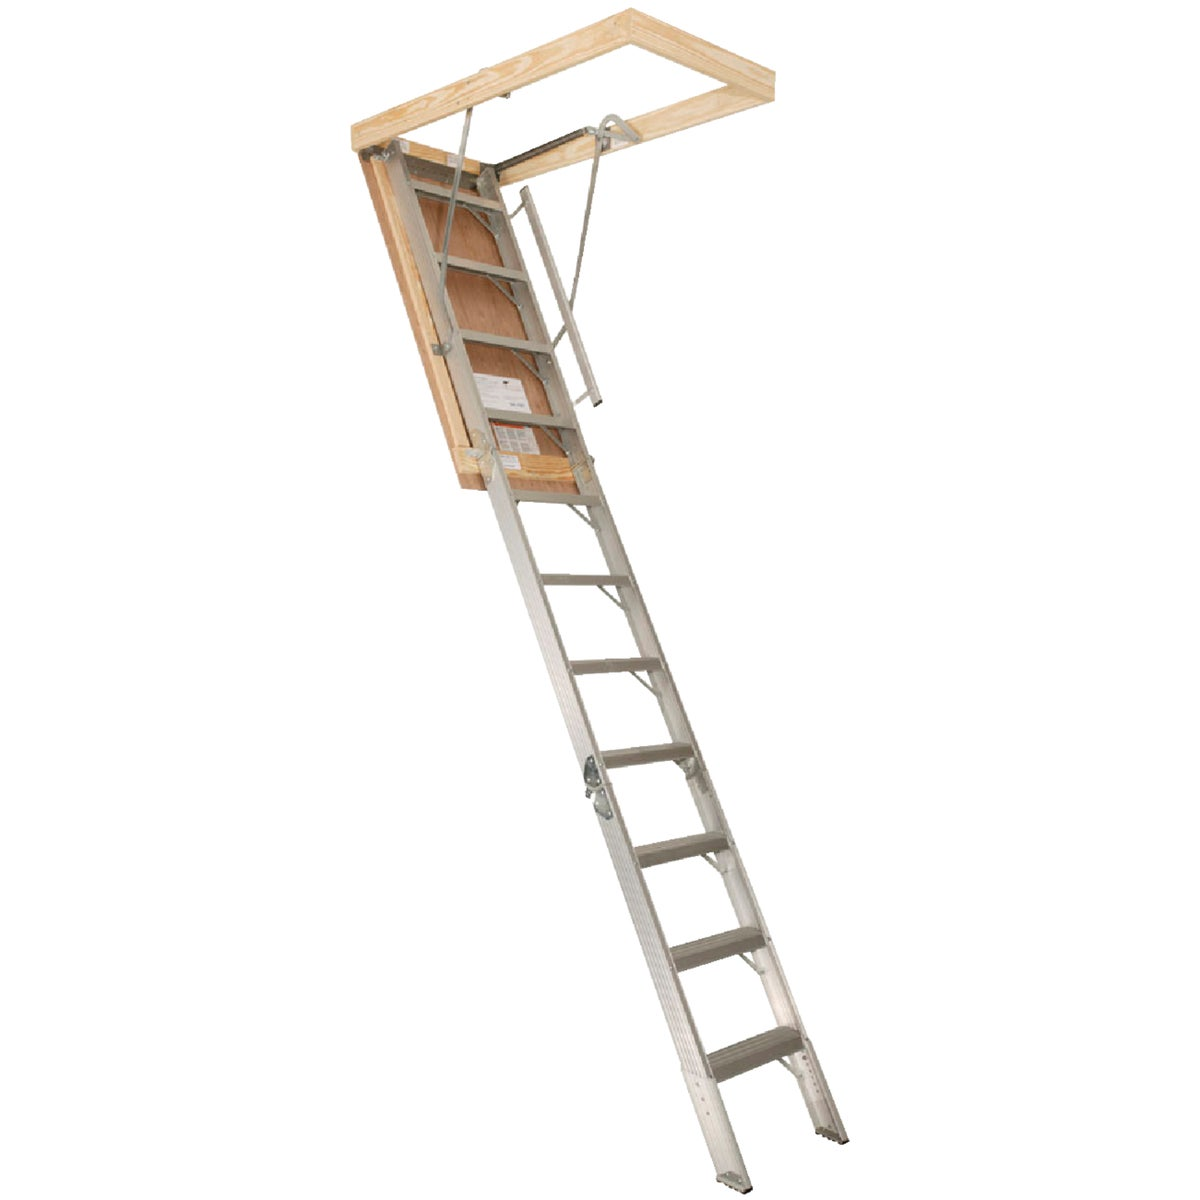 22-1/2X64 SUPREME STAIR - FTAL228P by Louisville Ladder